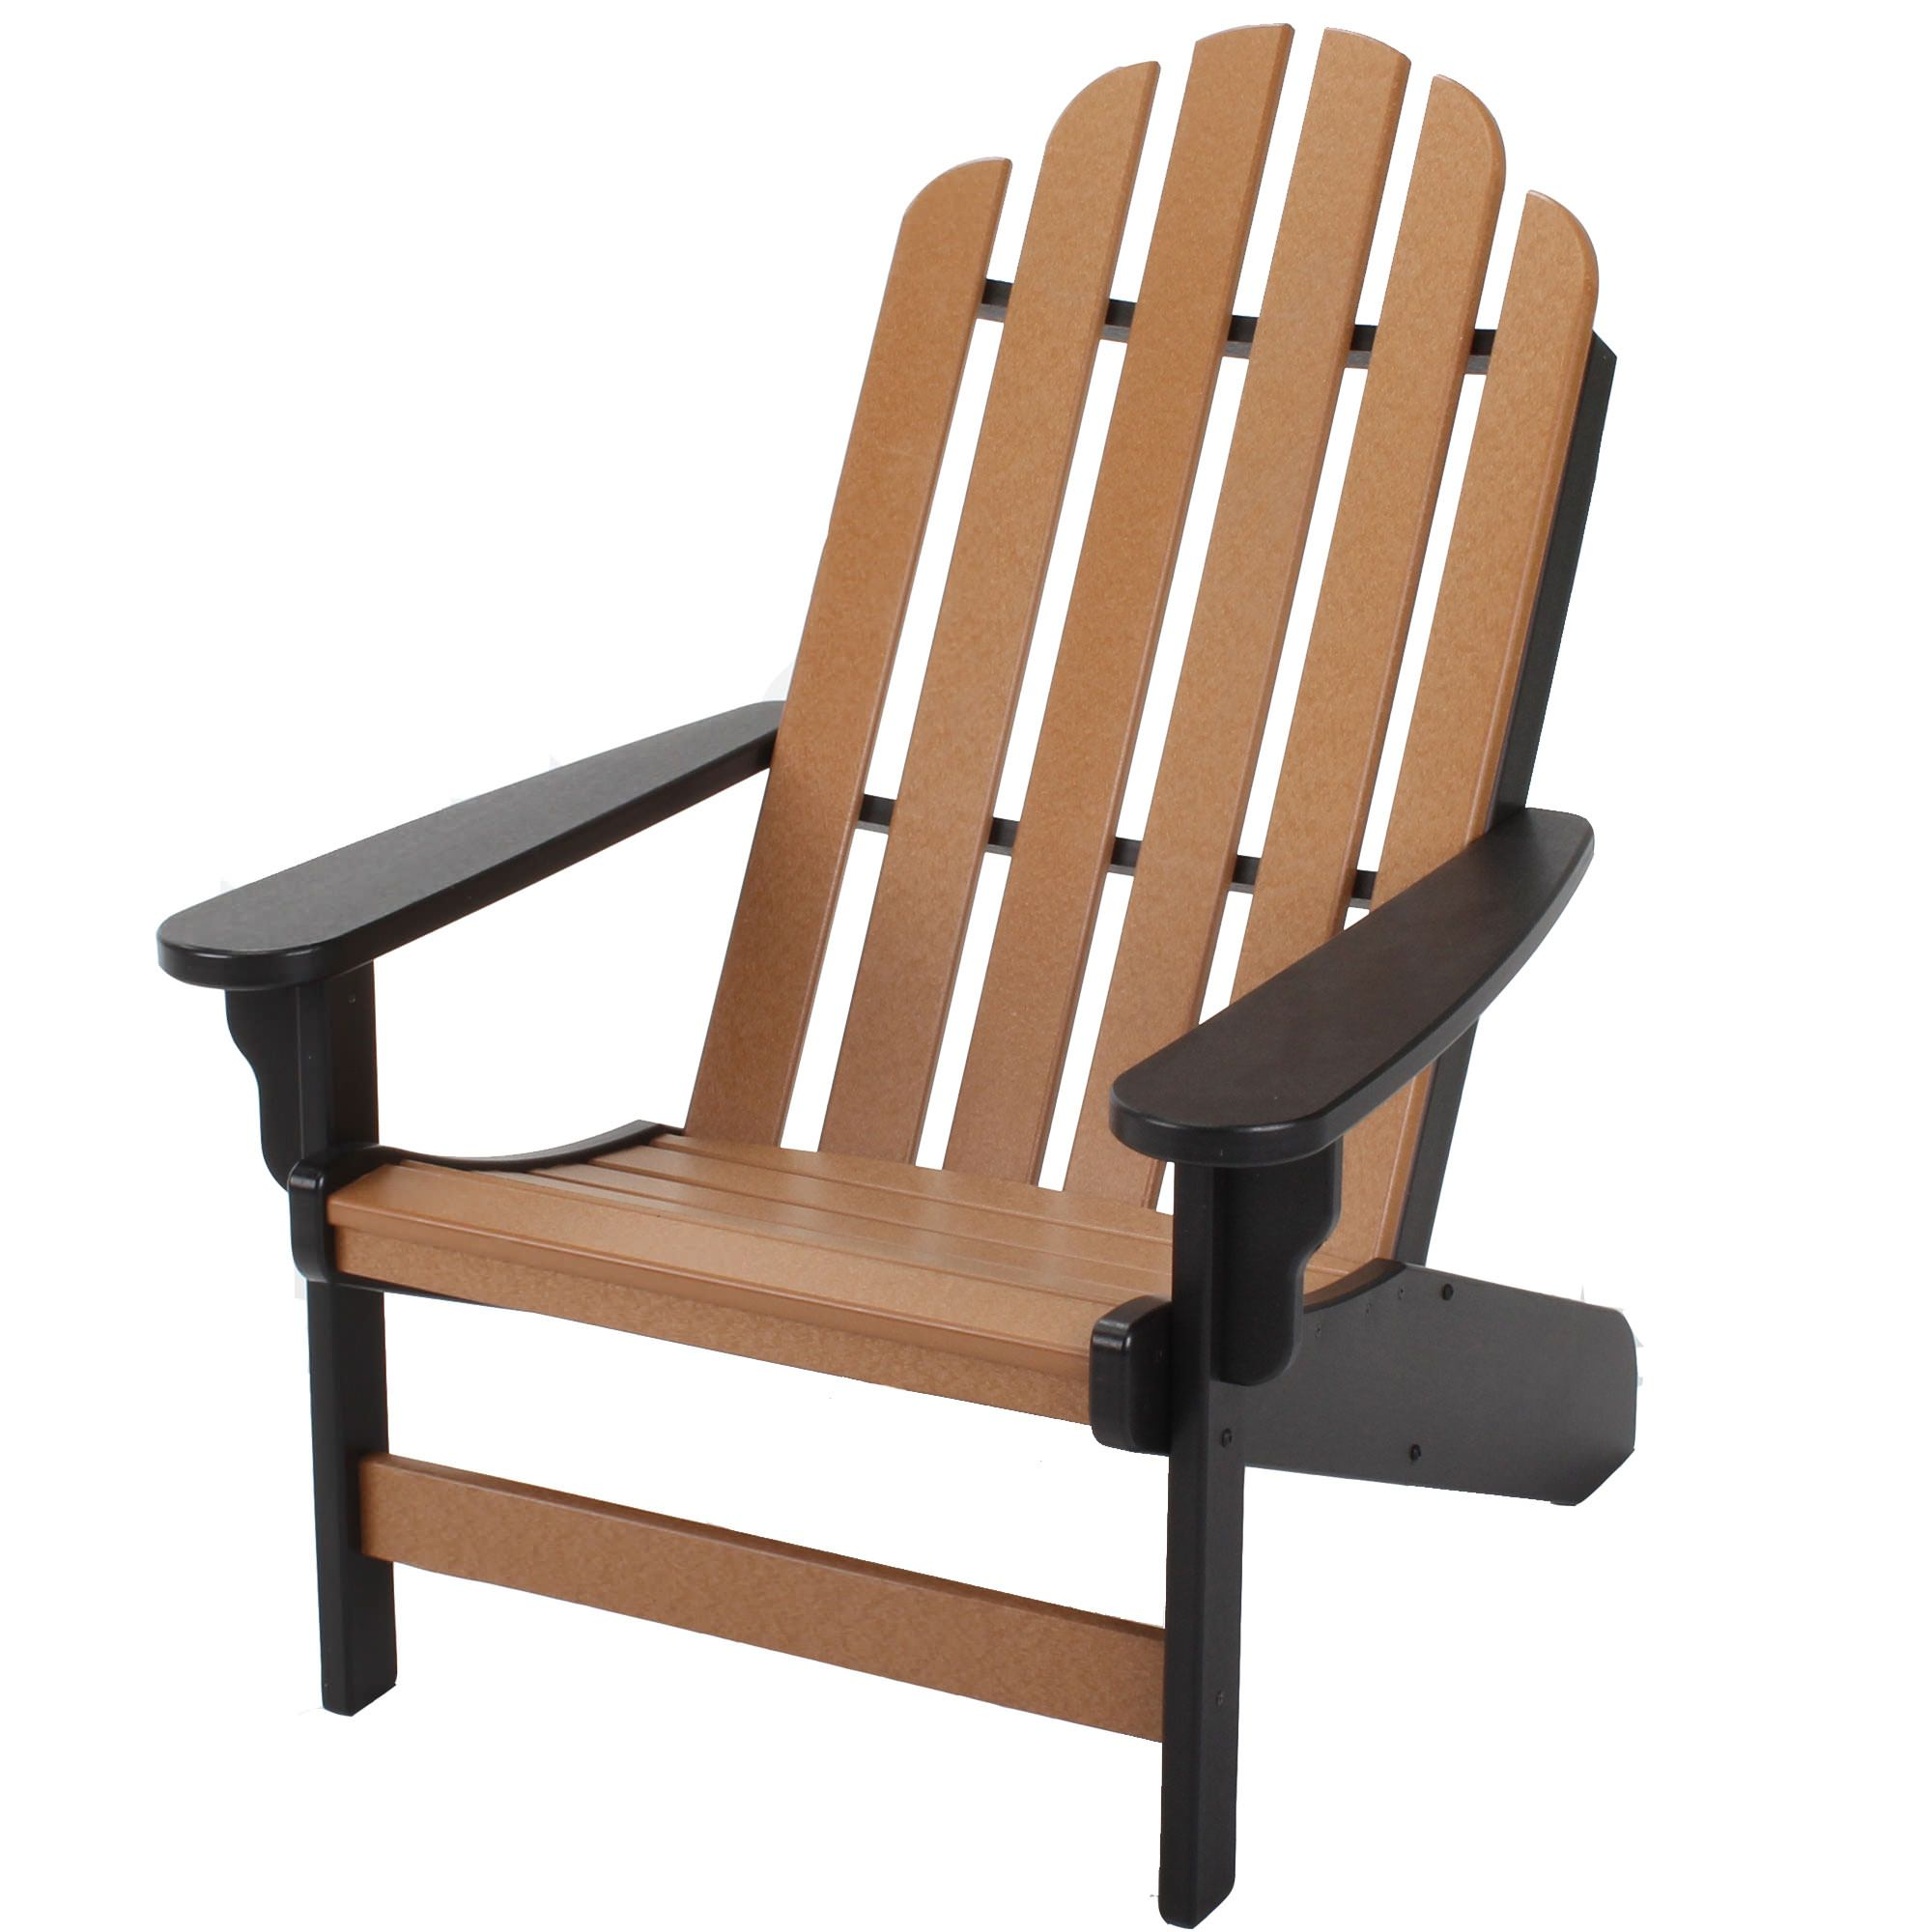 Superieur ... Essentials Adirondack Chair ...